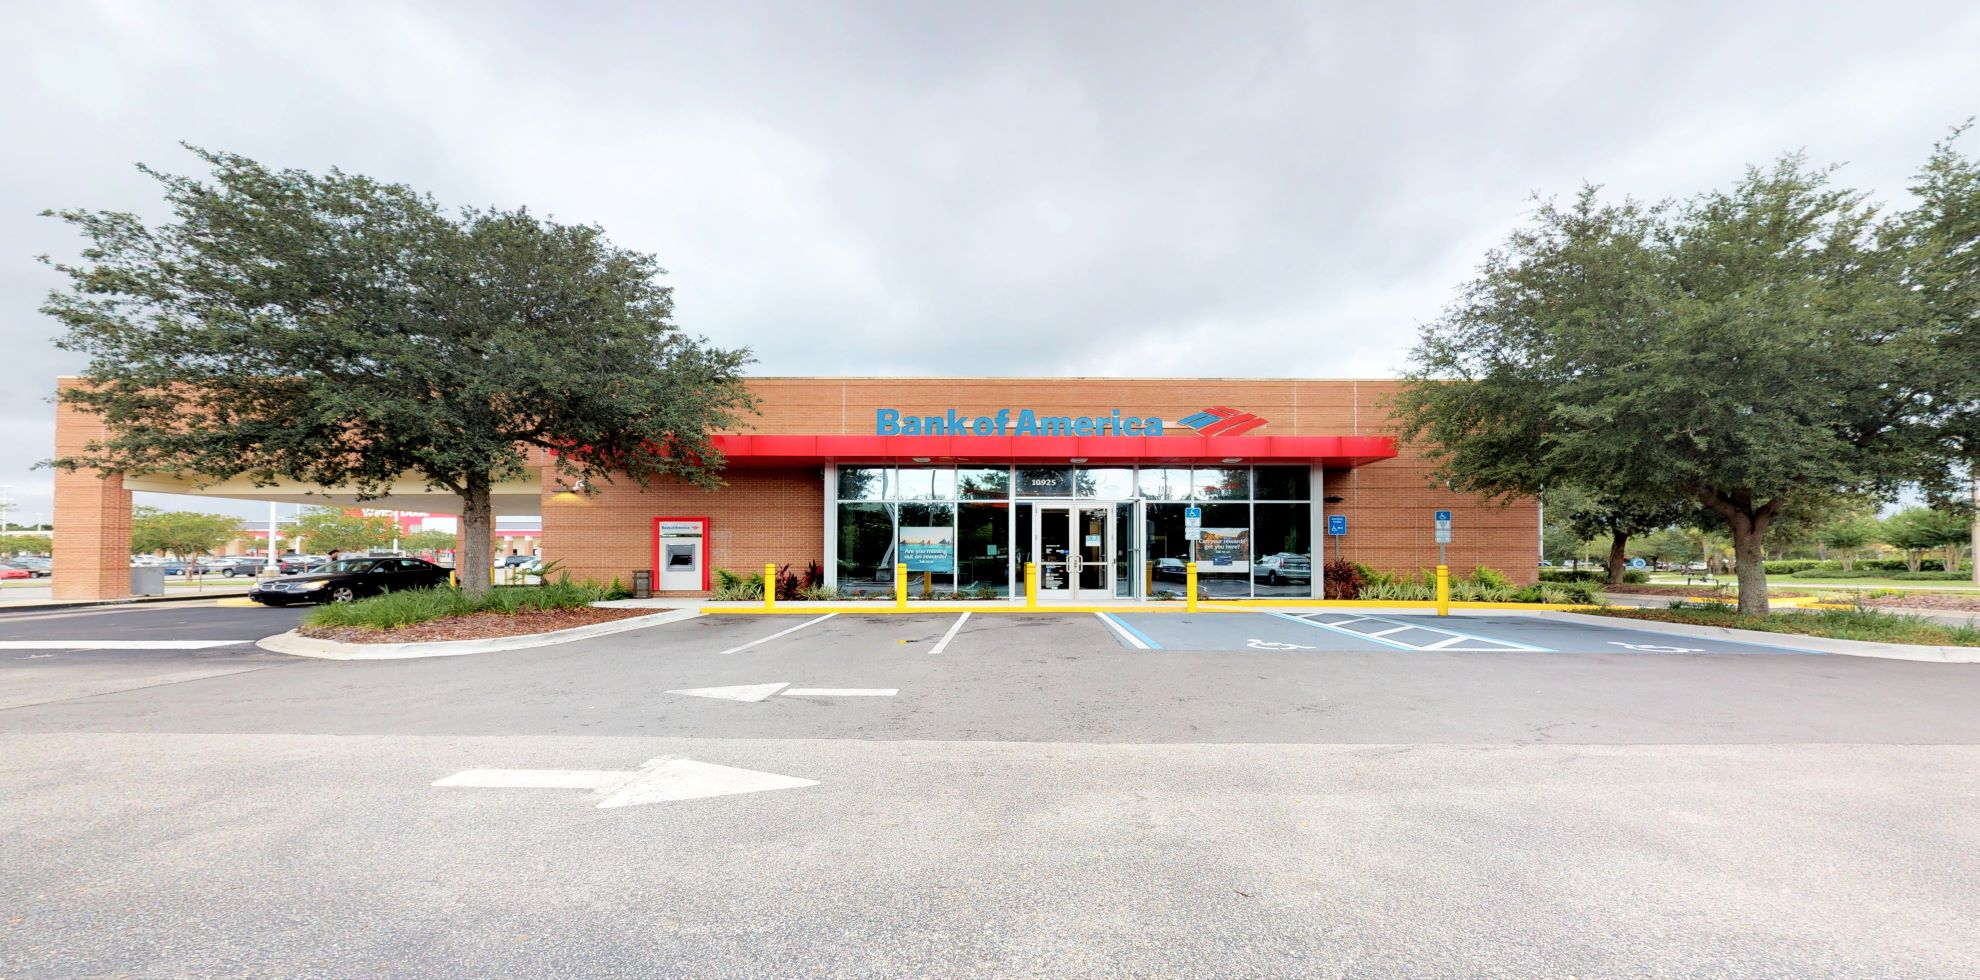 Bank of America financial center with drive-thru ATM   10925 Baymeadows Rd, Jacksonville, FL 32256